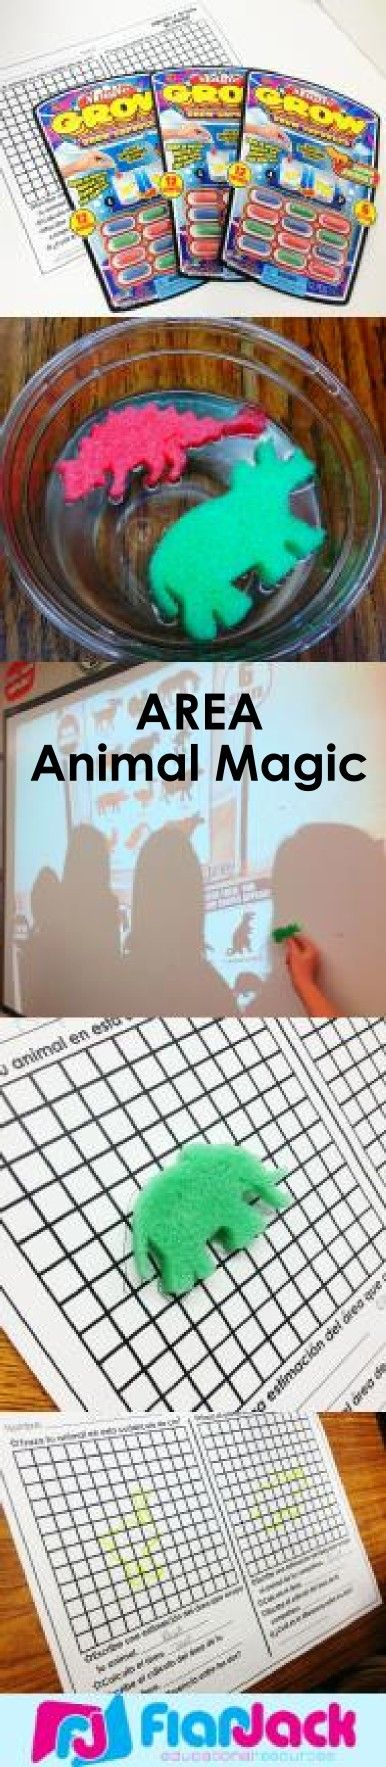 """Remember """"magic capsules?"""" Here's a fun activity we did recently that uses magic capsules to practice calculating the area using centimeter squared graphing paper. Freebie recording sheet included."""